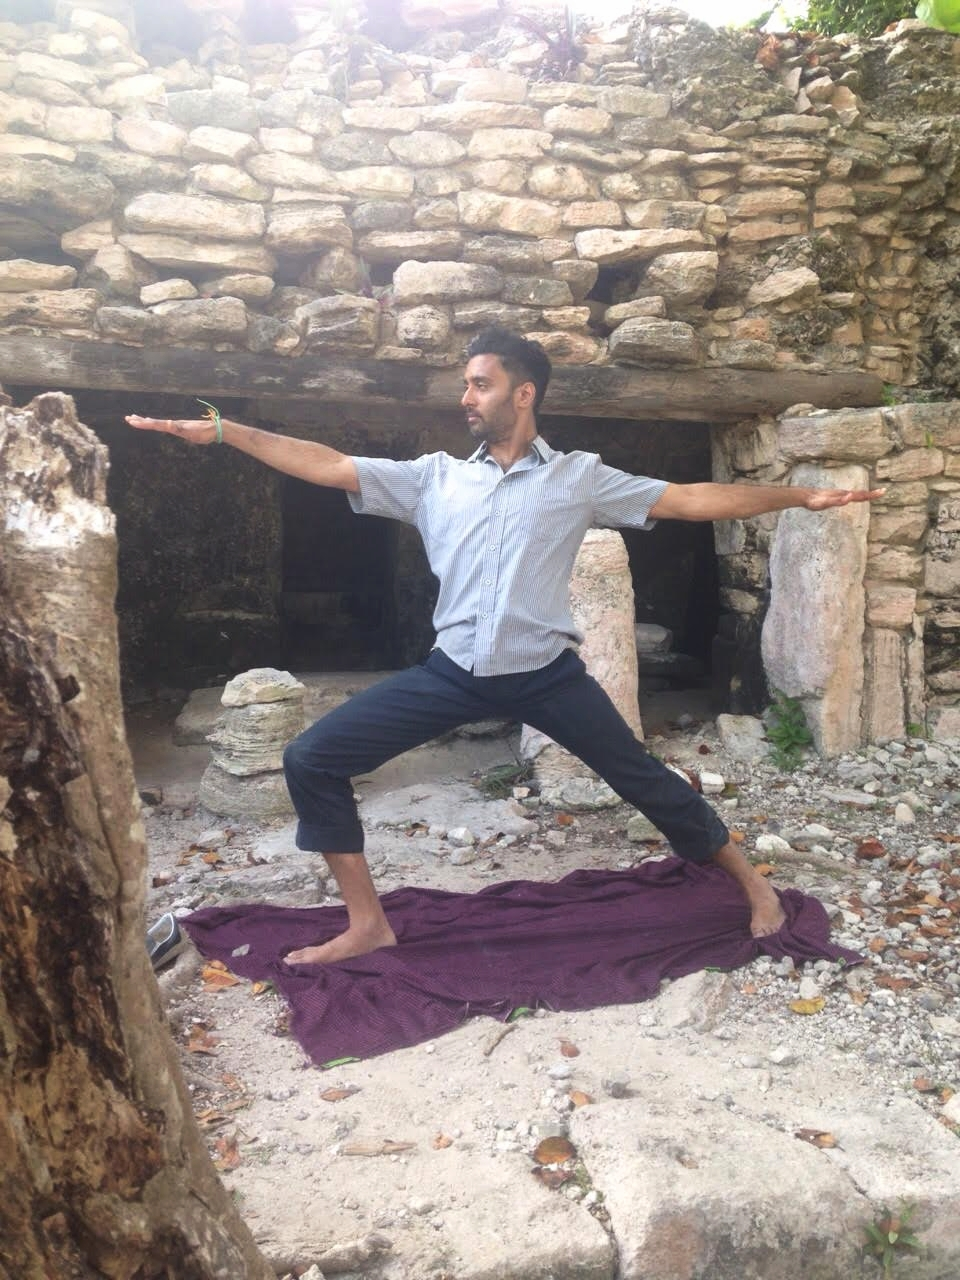 Hariprasad Kowtha Is One Of The Few South Asian Men Teaching Yoga In Philadelphia He Grew Up Closely Tied To Indian Culture Speaking Telugu At